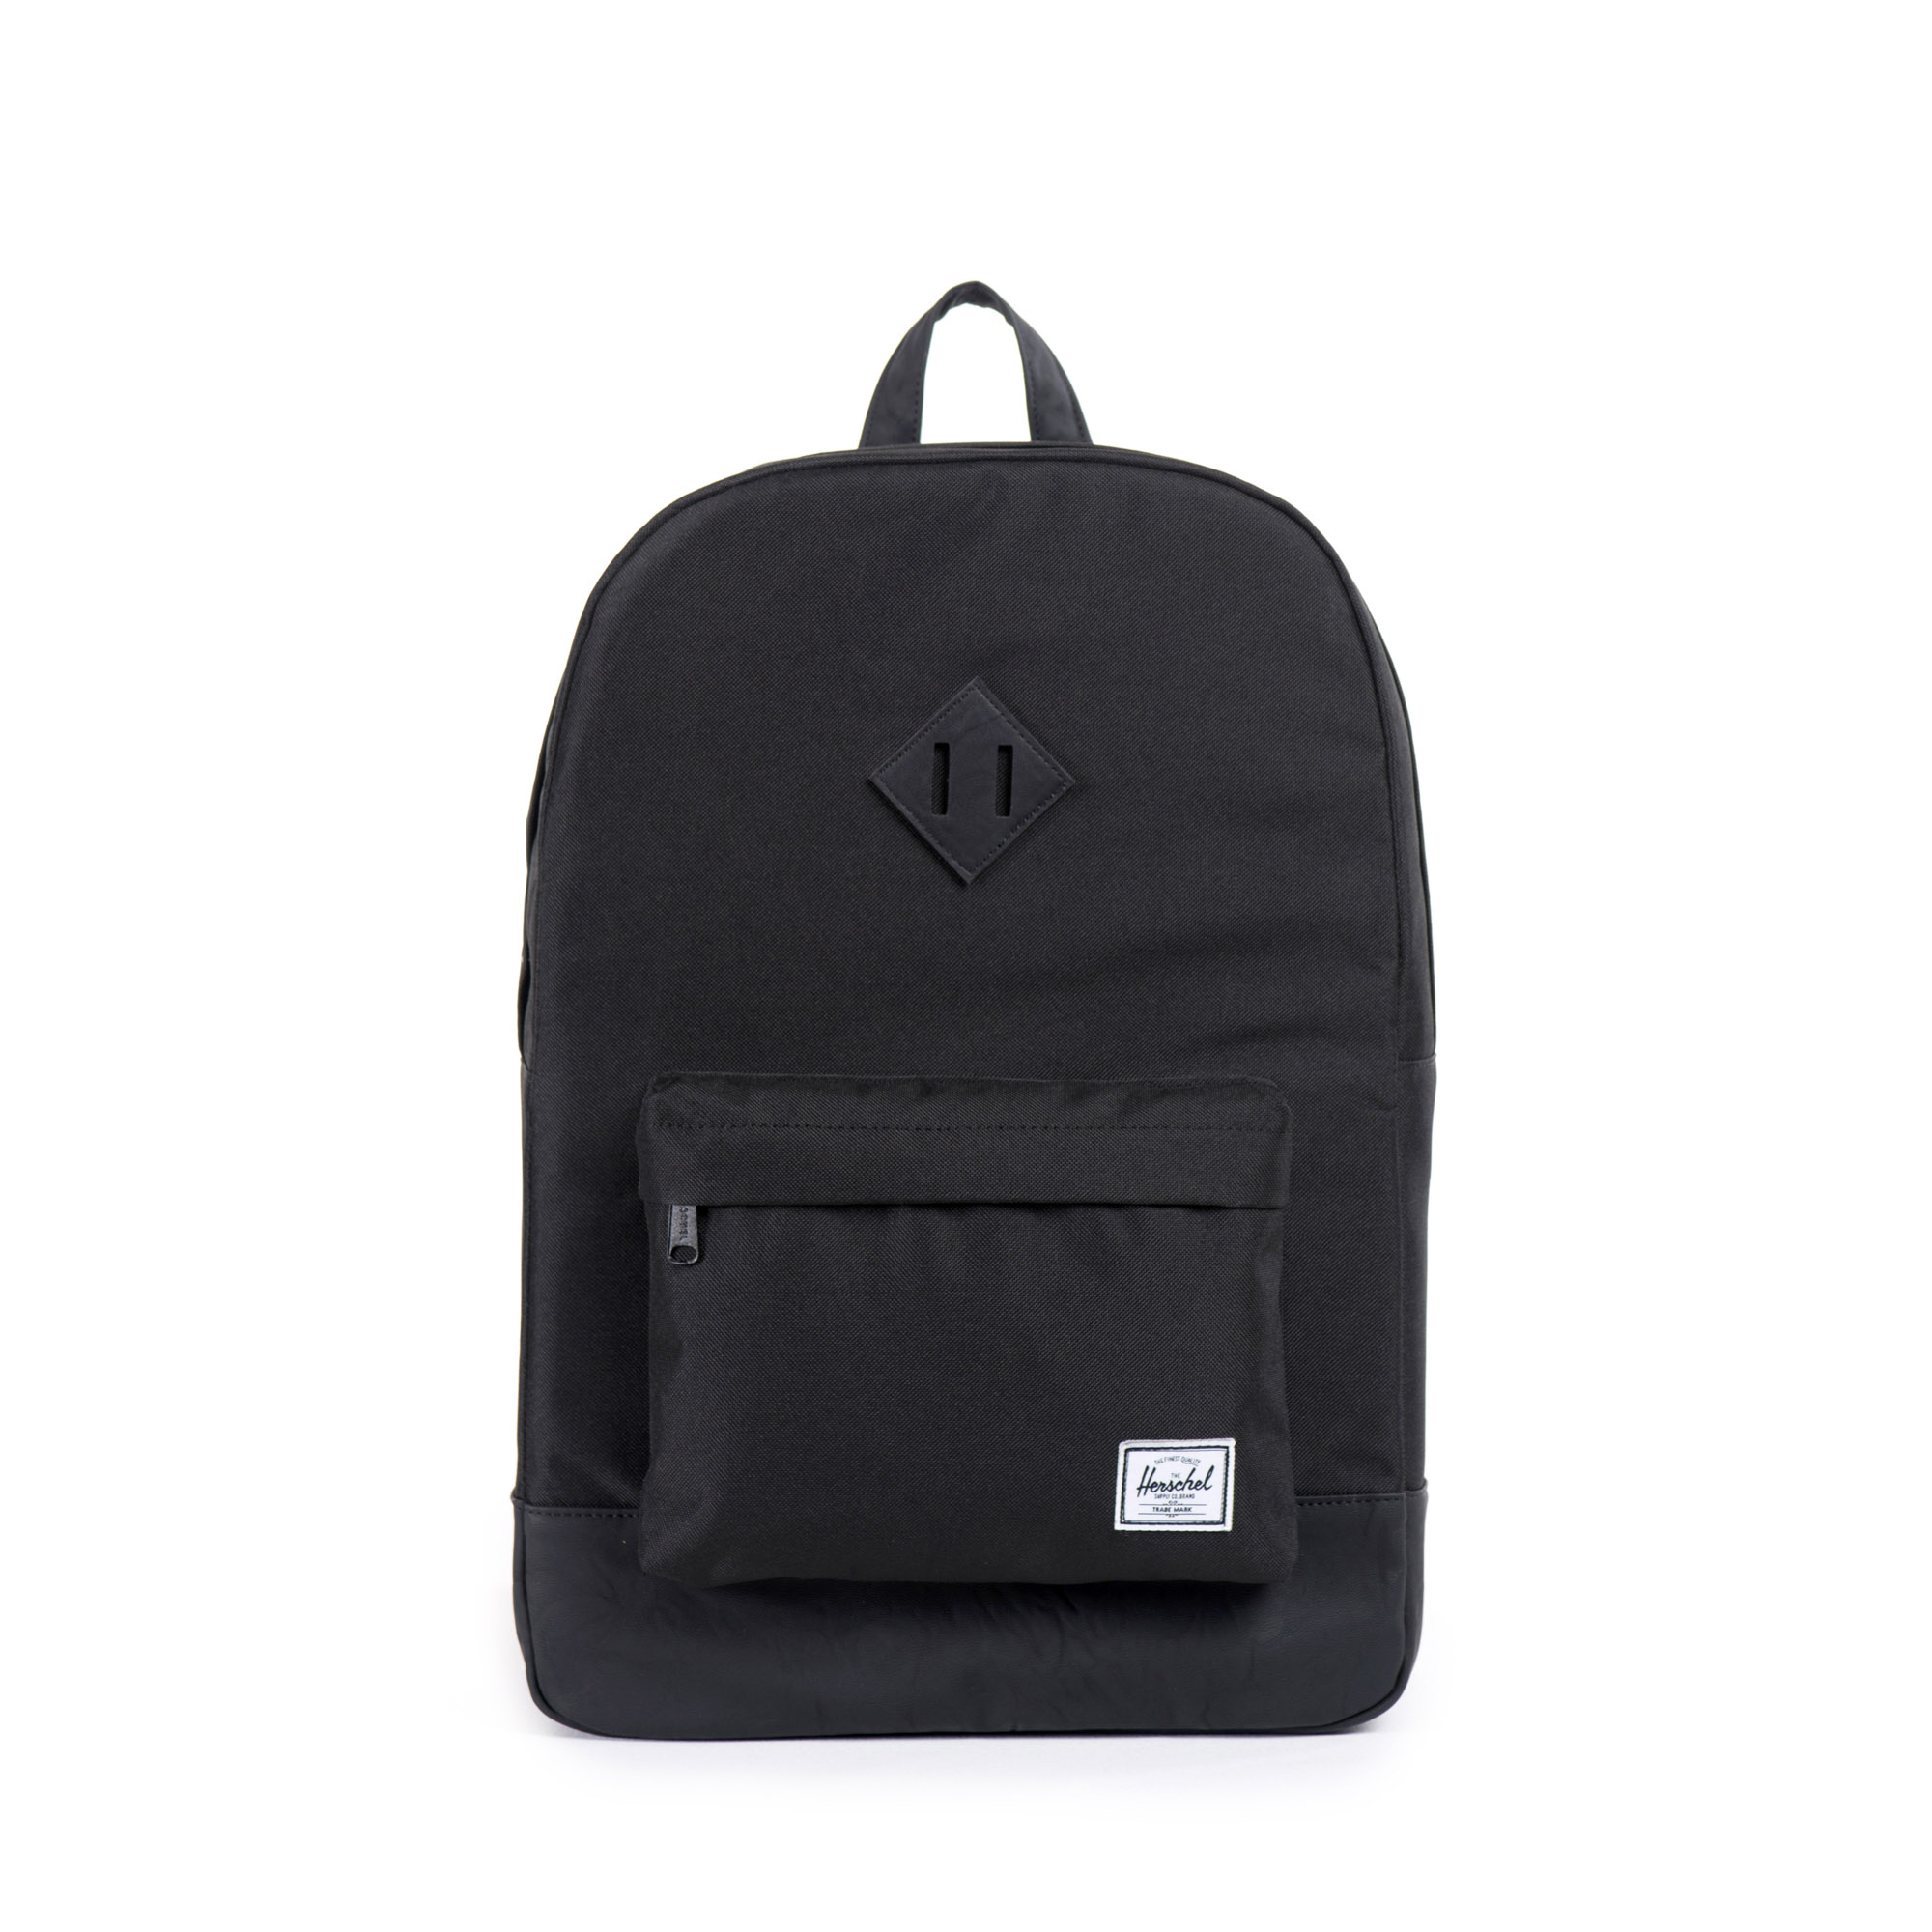 Heritage Backpack  8956798230621